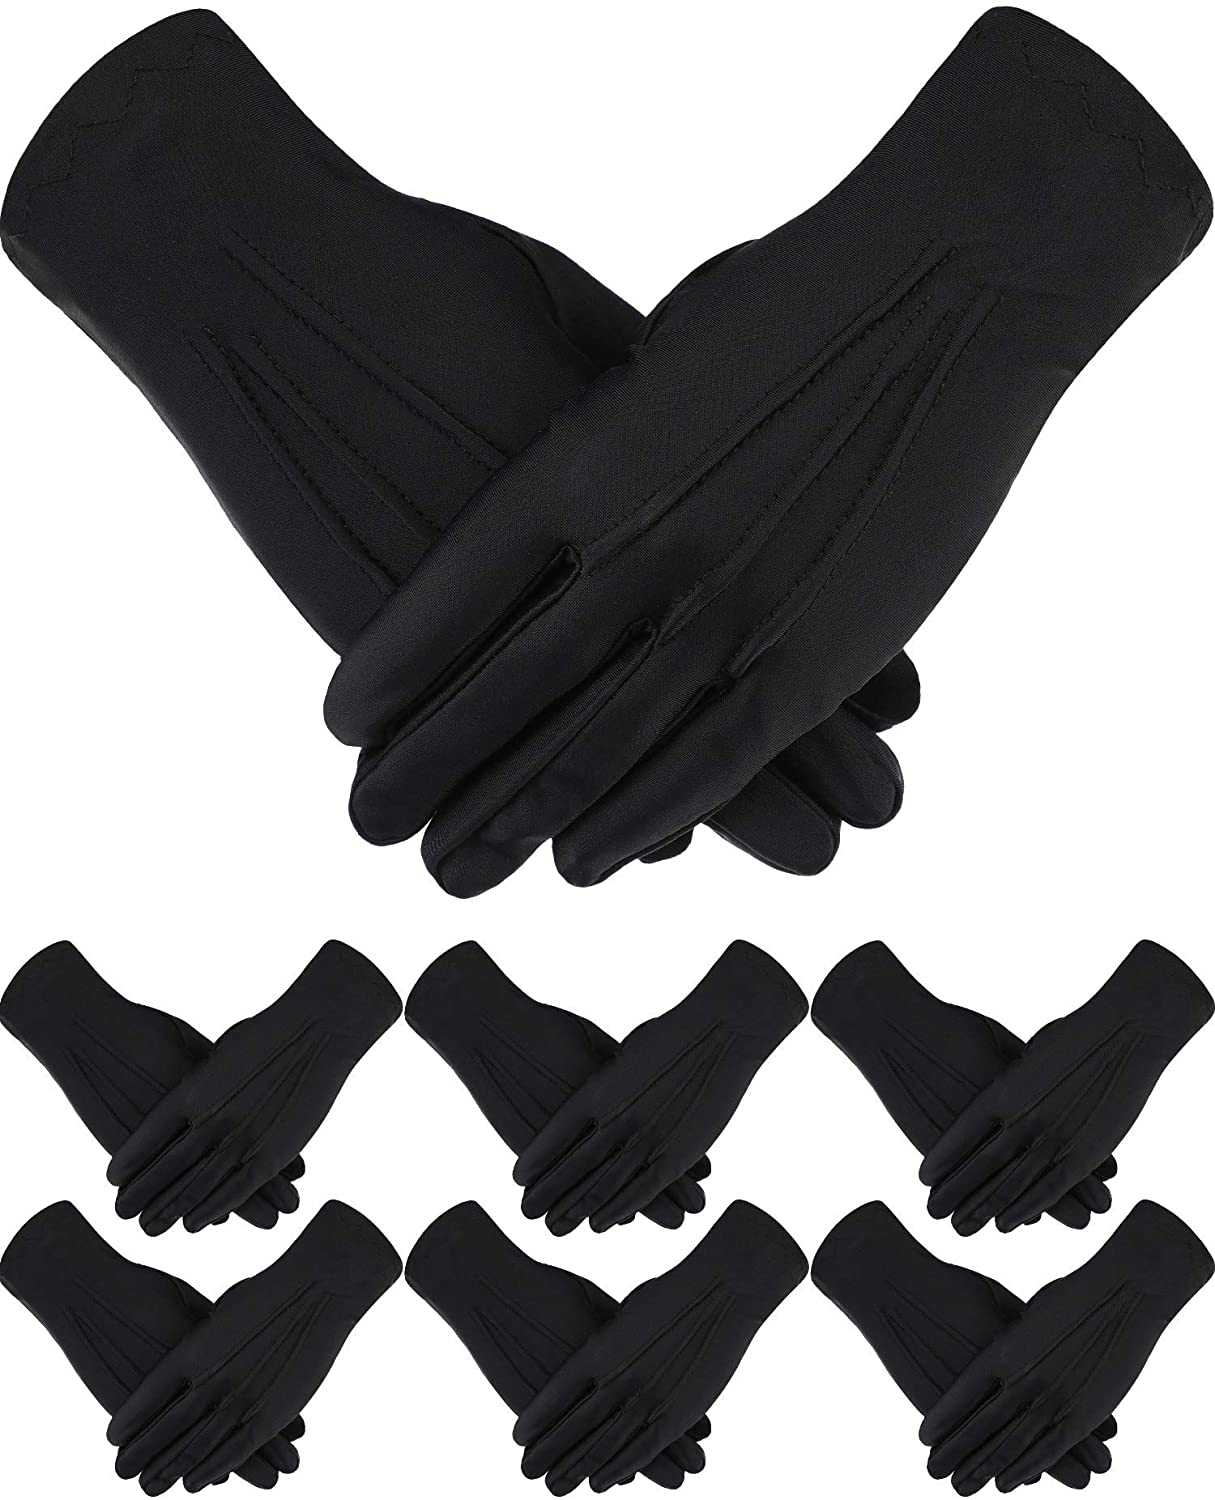 6 Pairs Uniform Gloves Parade Costume Gloves for Police Formal Tuxedo Guard